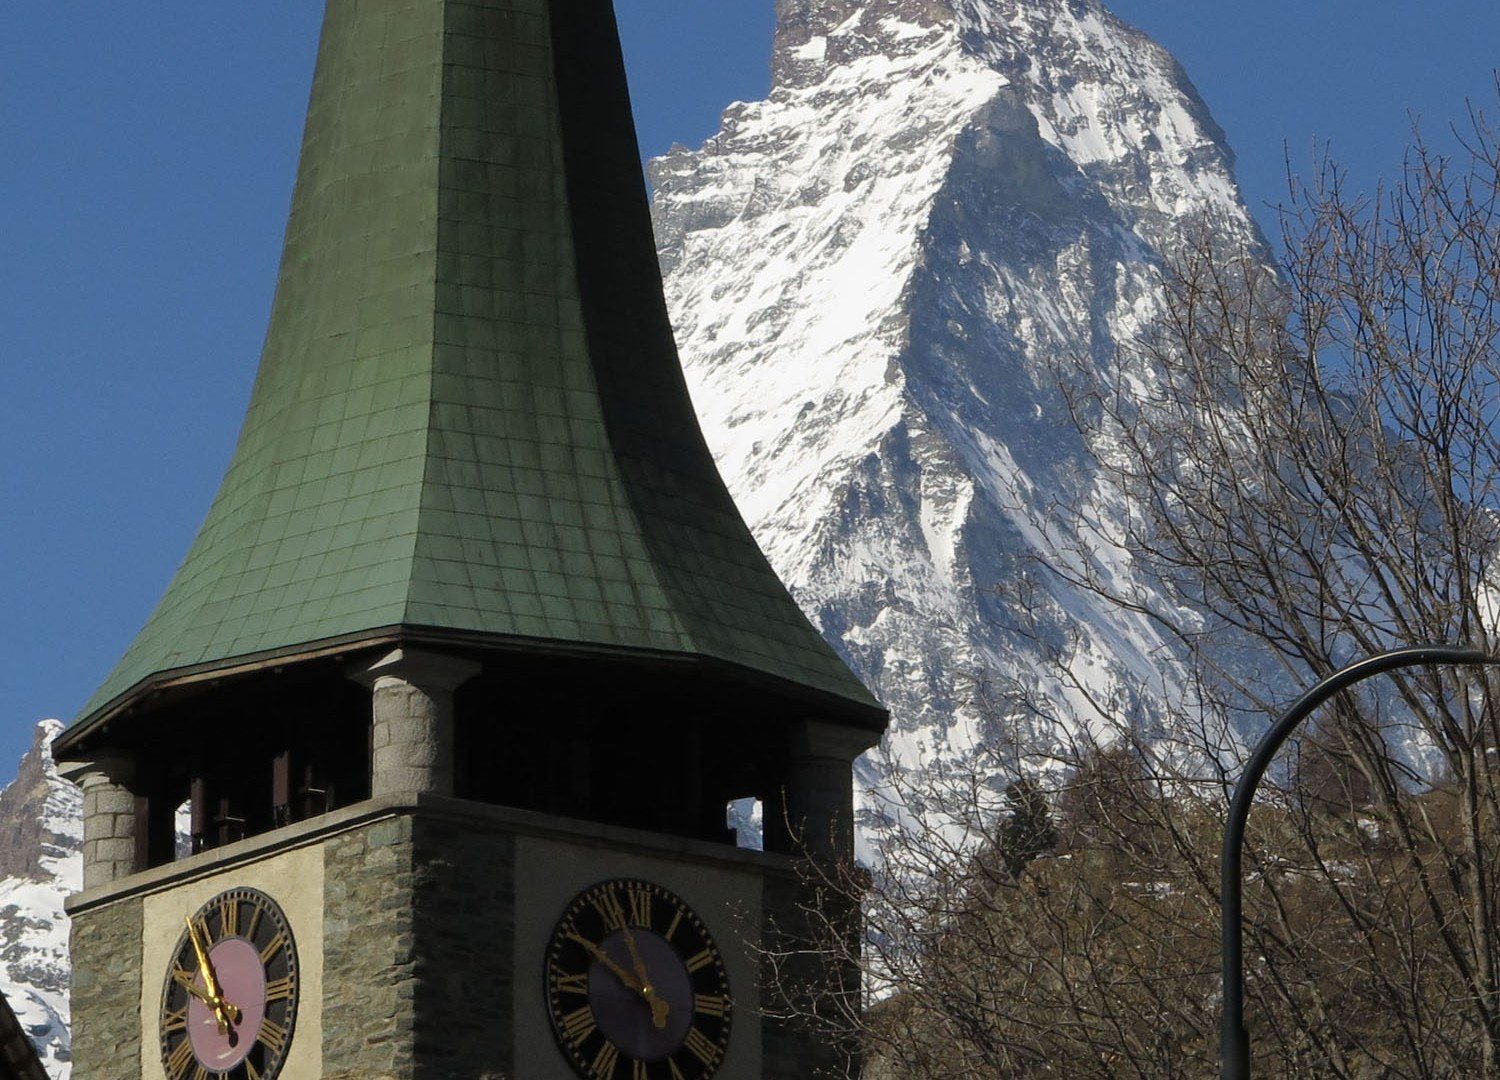 witzerland-Zermatt-Church-Steeple-And-Matternhorn